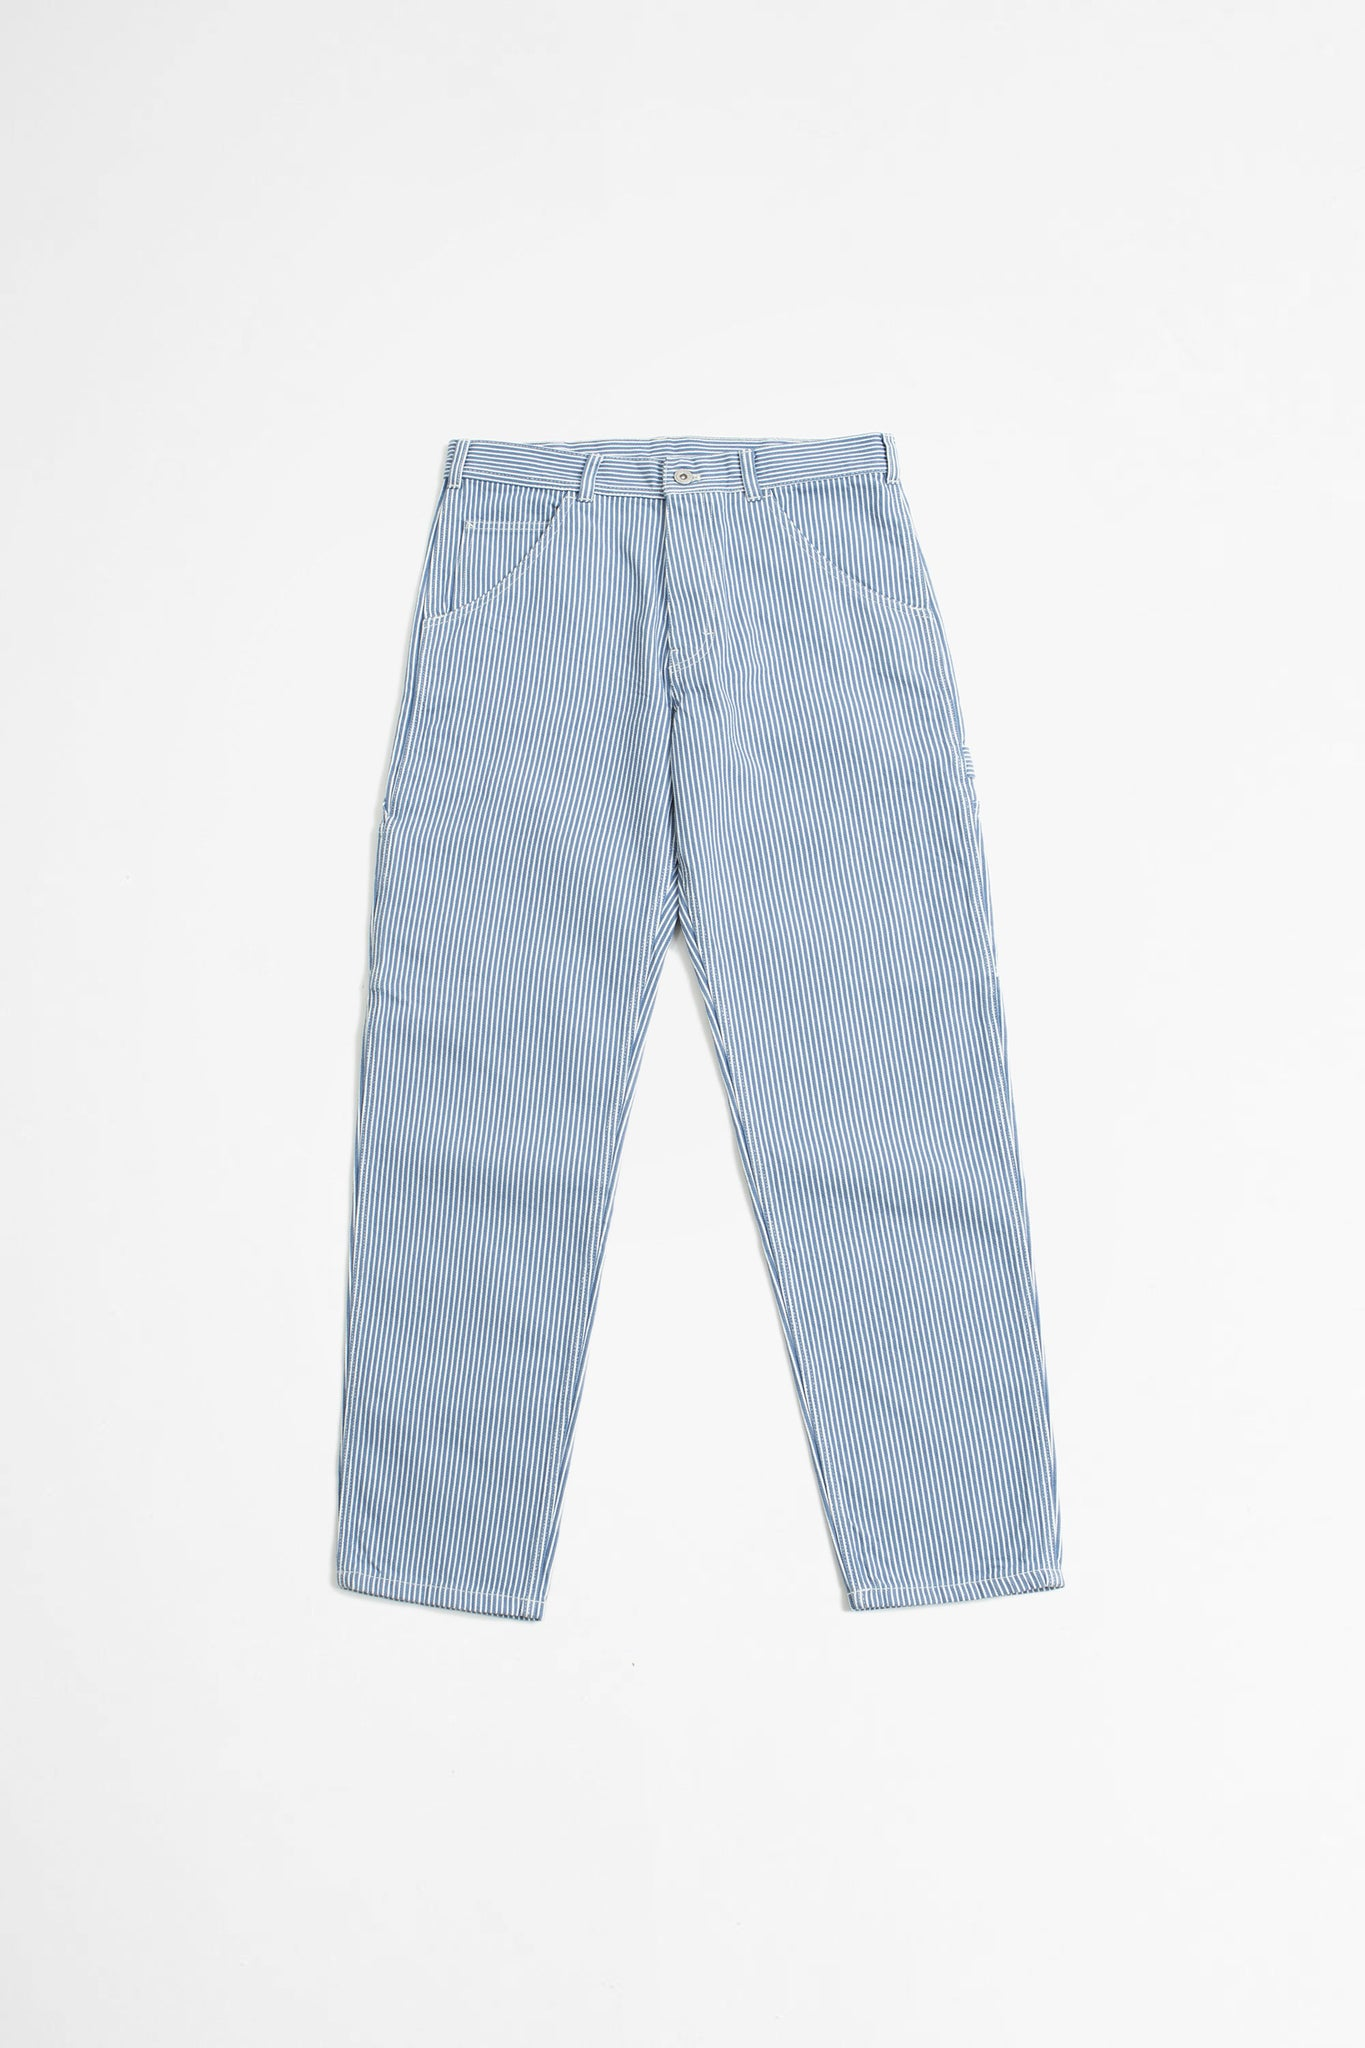 80s Painter pant washed hickory